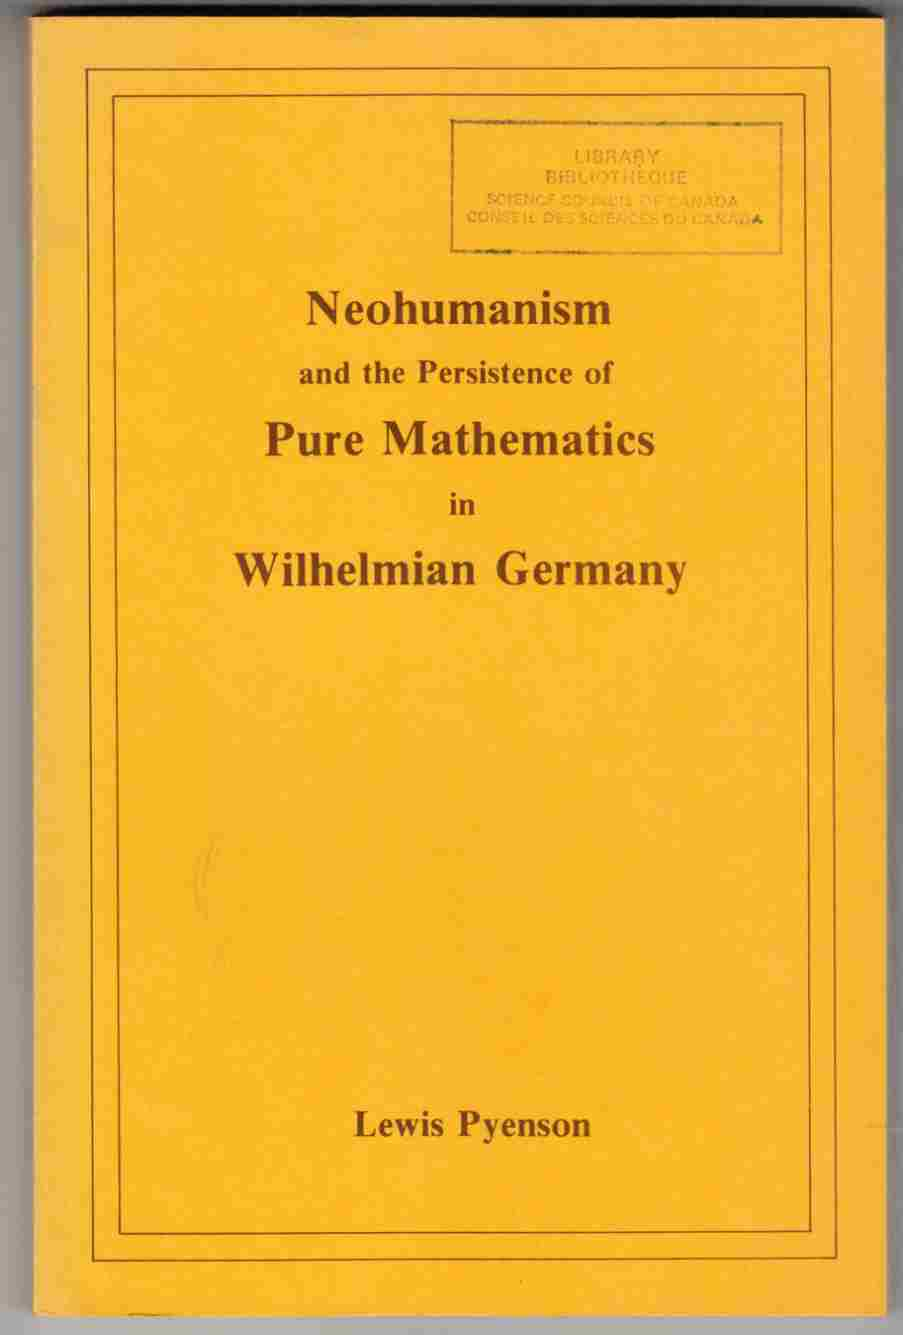 Image for Neohumanism and the Persistence of Pure Mathematics in Wilhelmian Germany